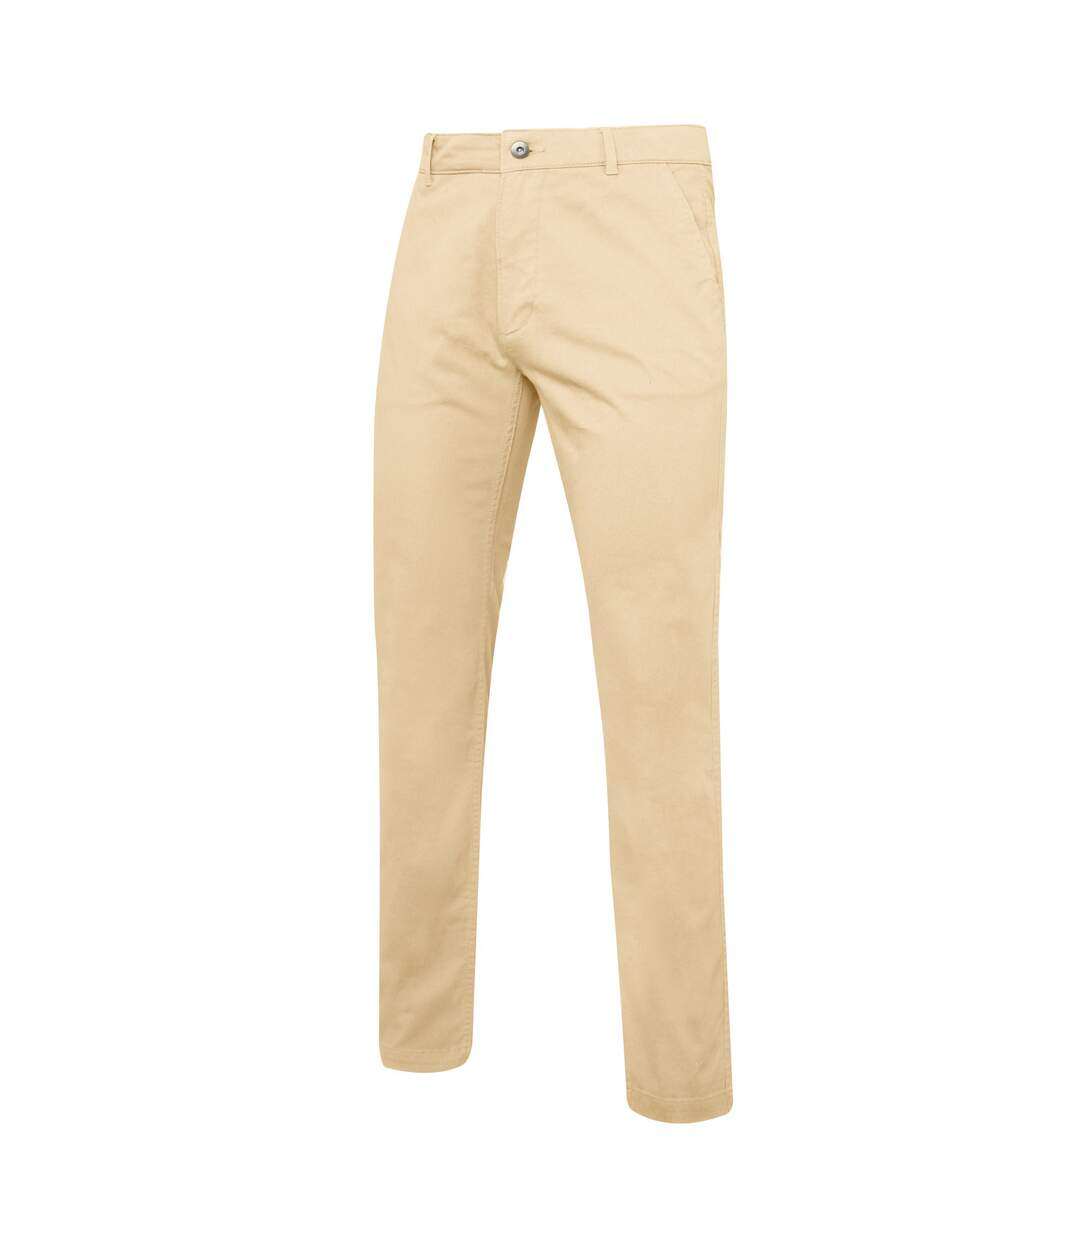 Asquith & Fox Mens Slim Fit Cotton Chino Trousers (Natural) - UTRW5355